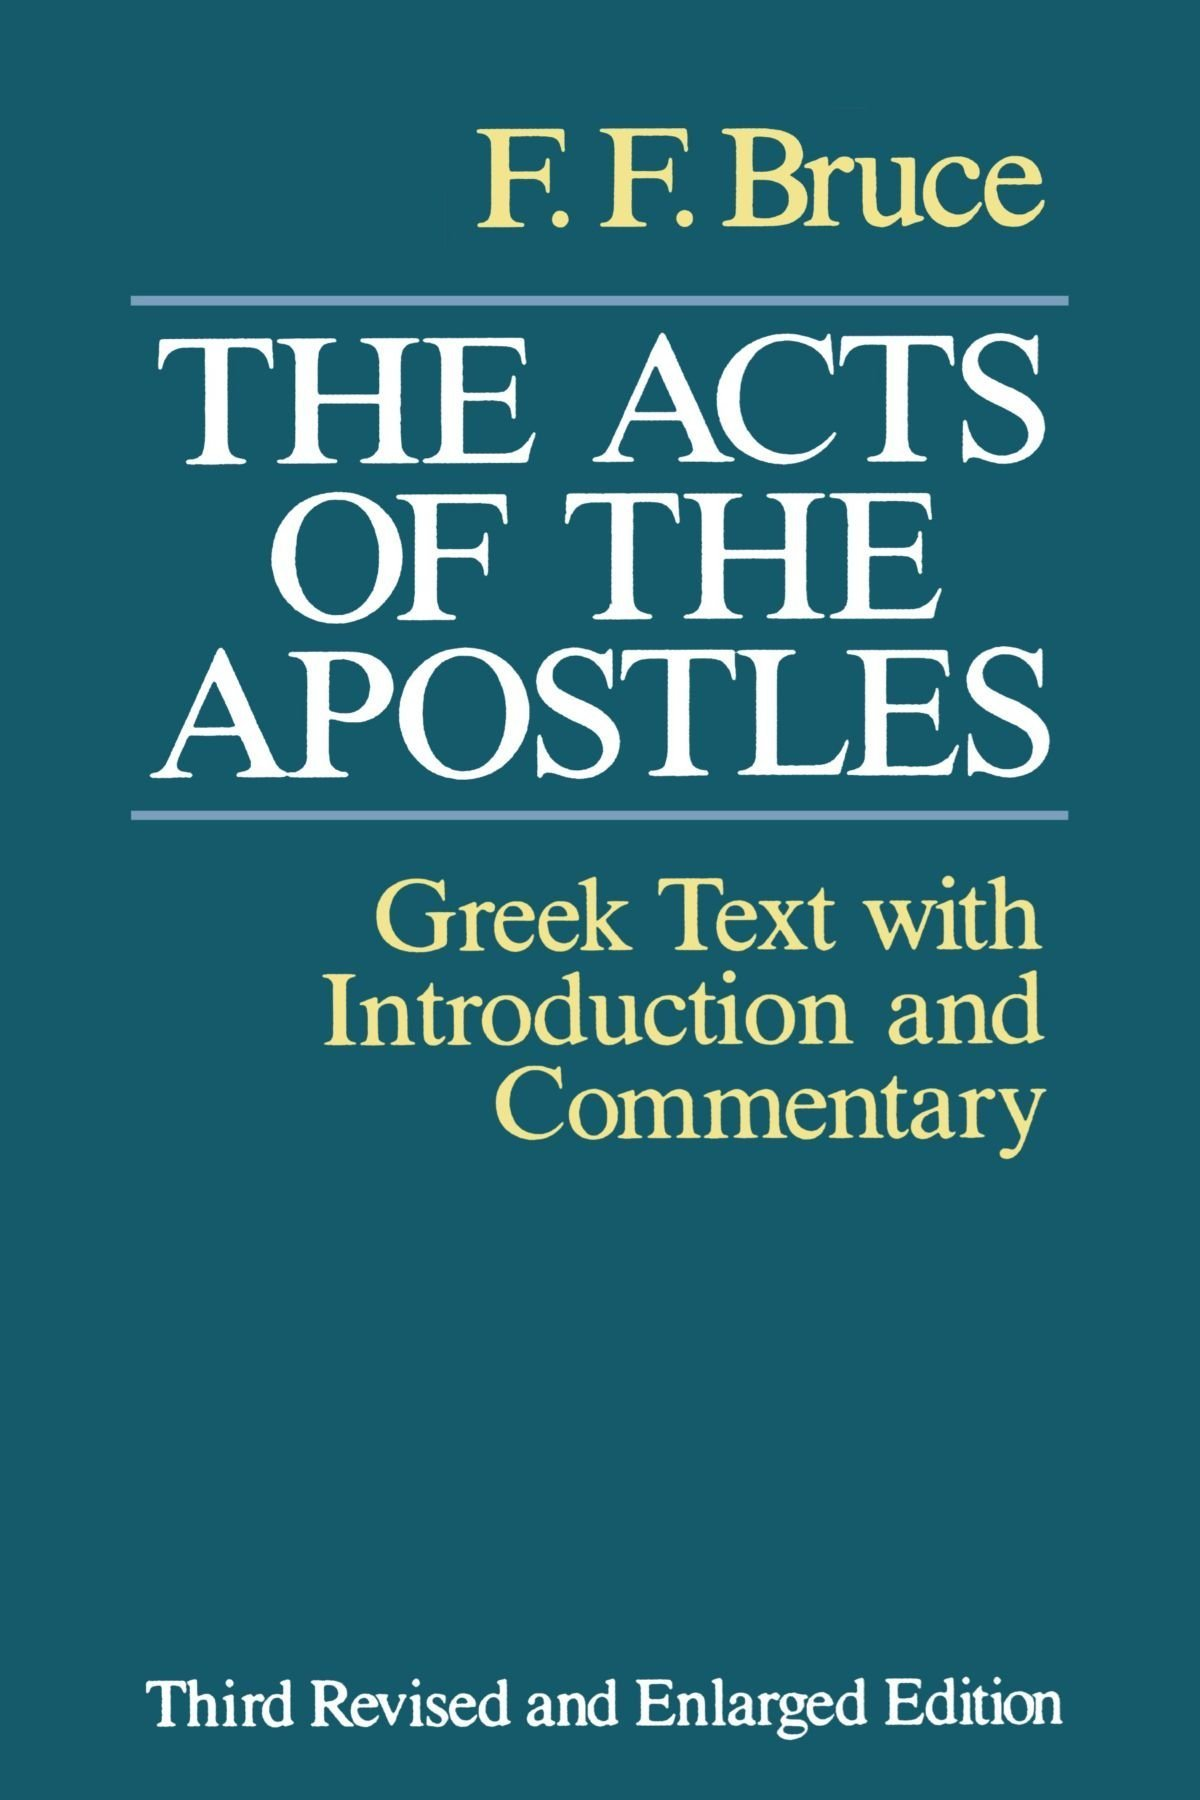 The Acts of the Apostles: The Greek Text with Introduction and ...